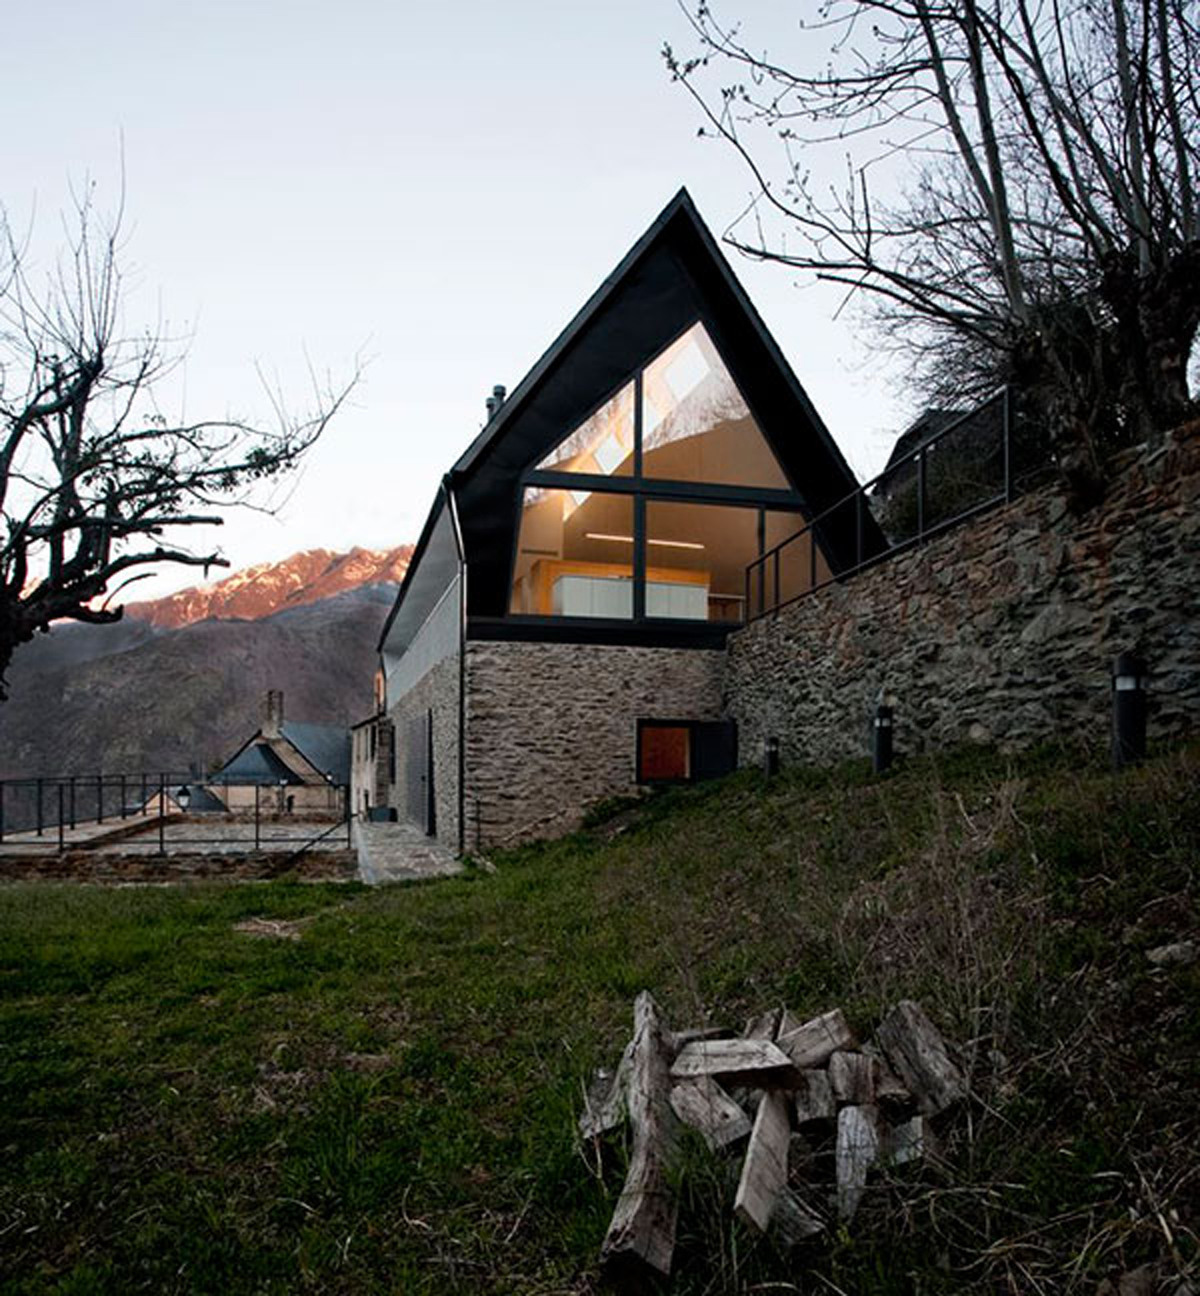 contemporary mountain house designs - Iroonie.com